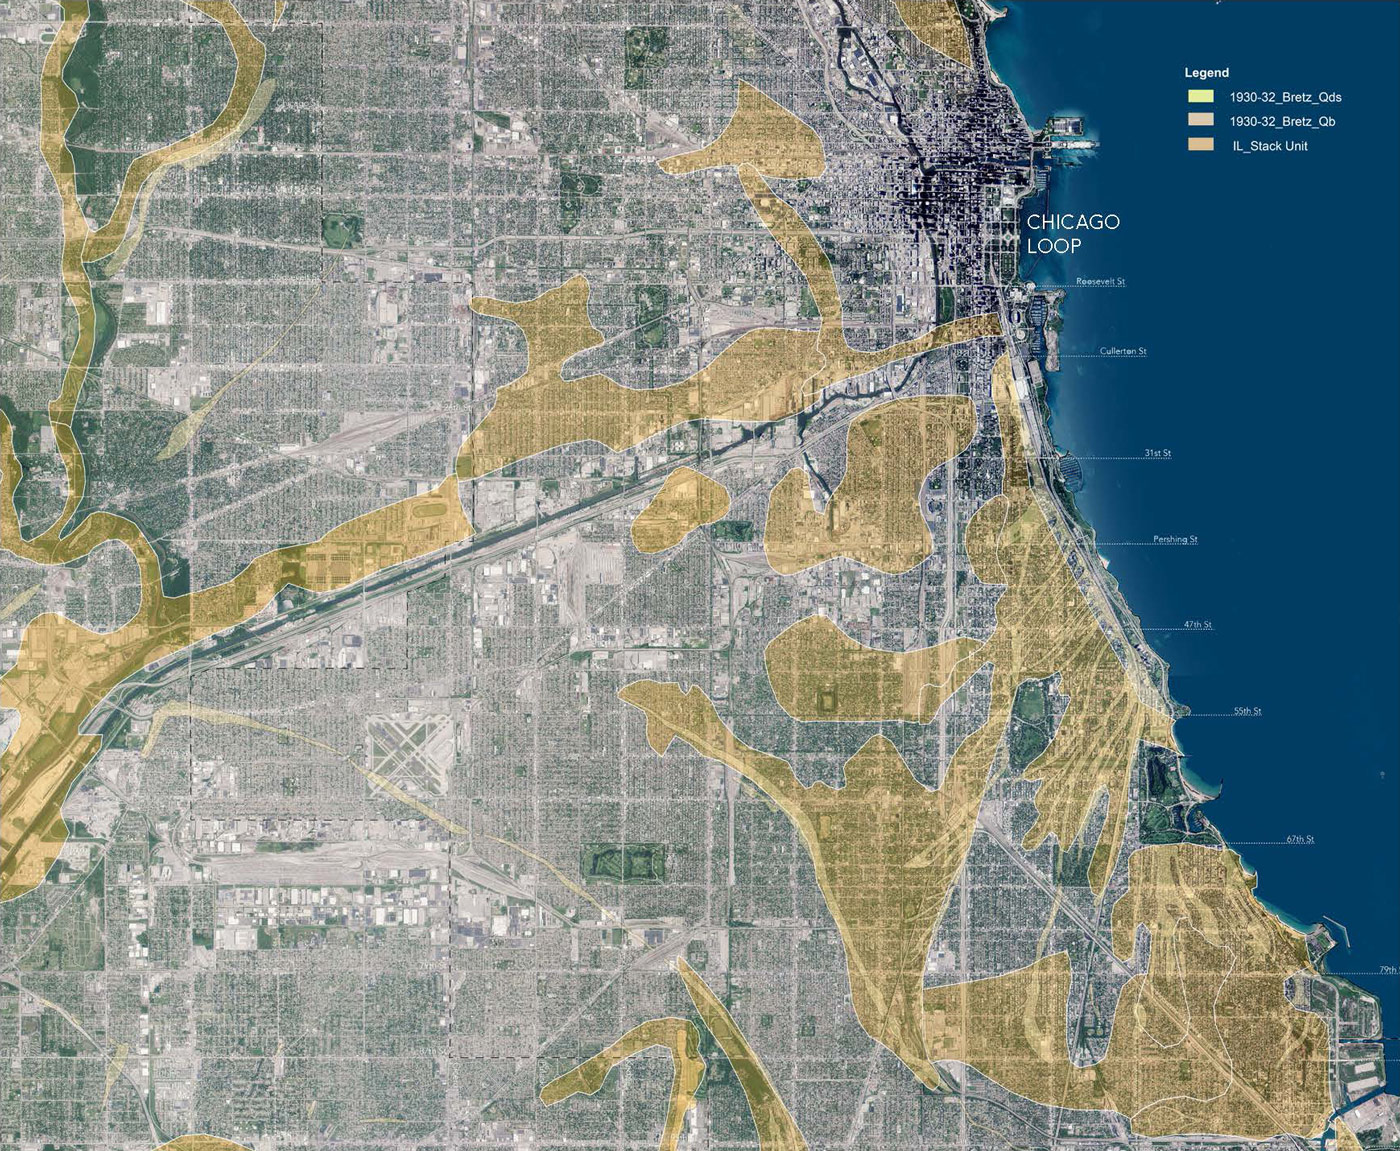 Landscape architect explores Chicago flooding solutions alternatives